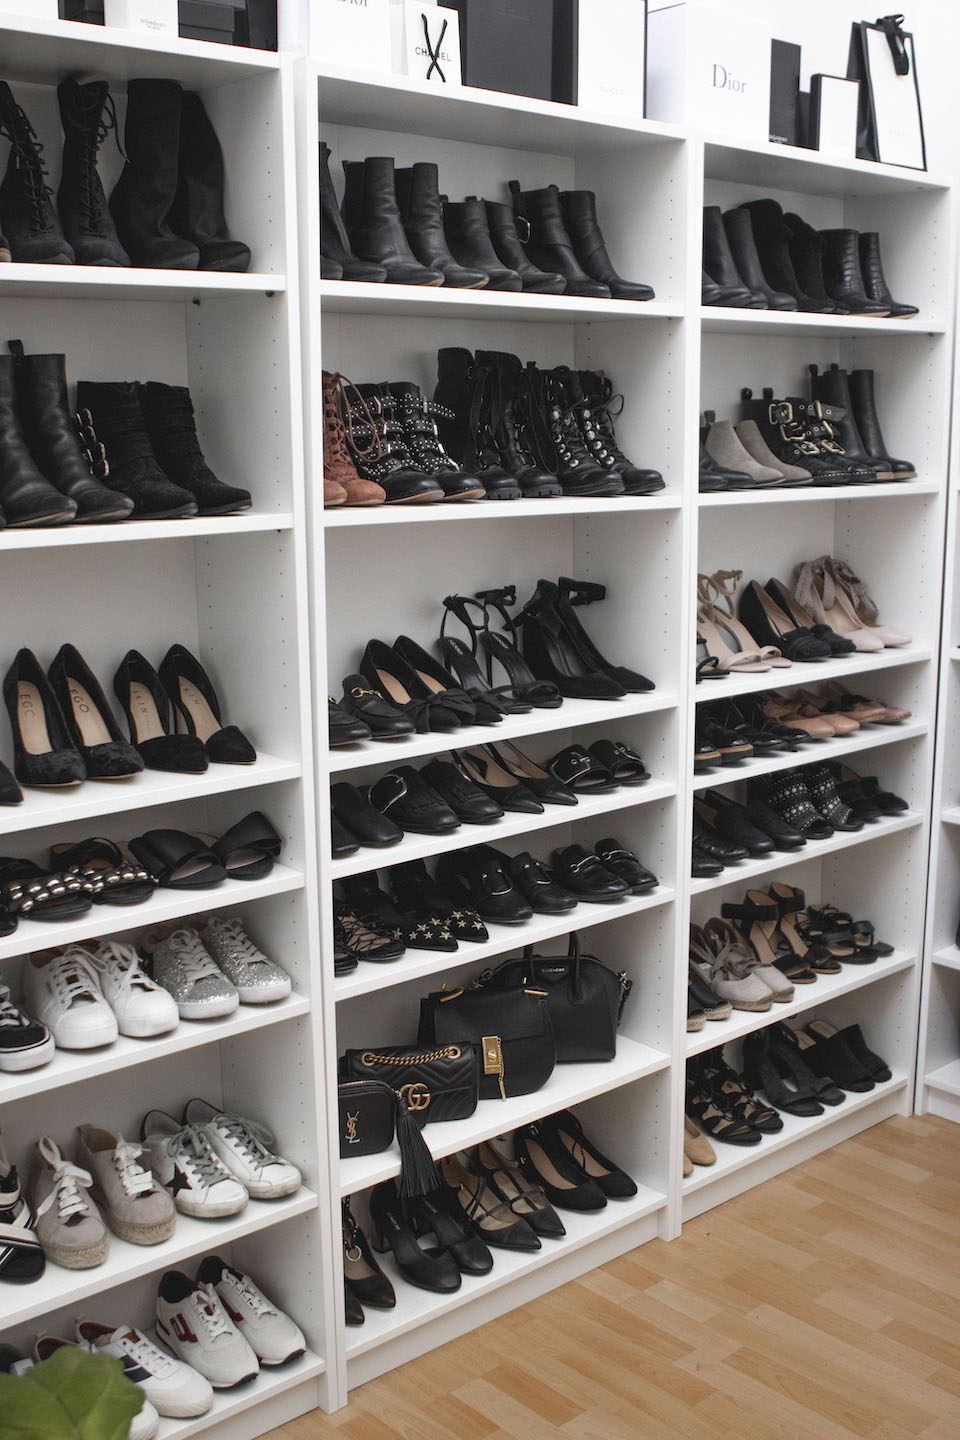 Ashleigh D'Mello bookshelves filled with shoes